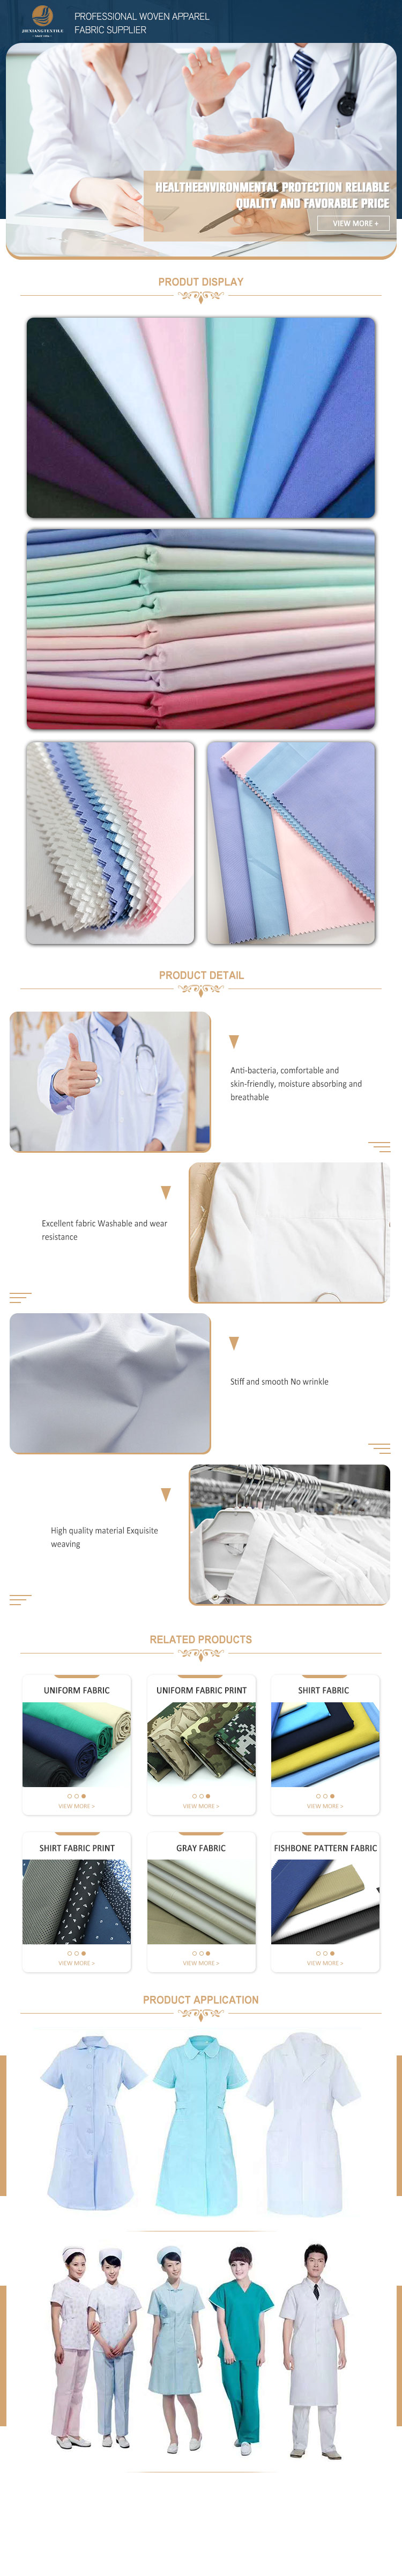 Hospital uniform fabric with different colors